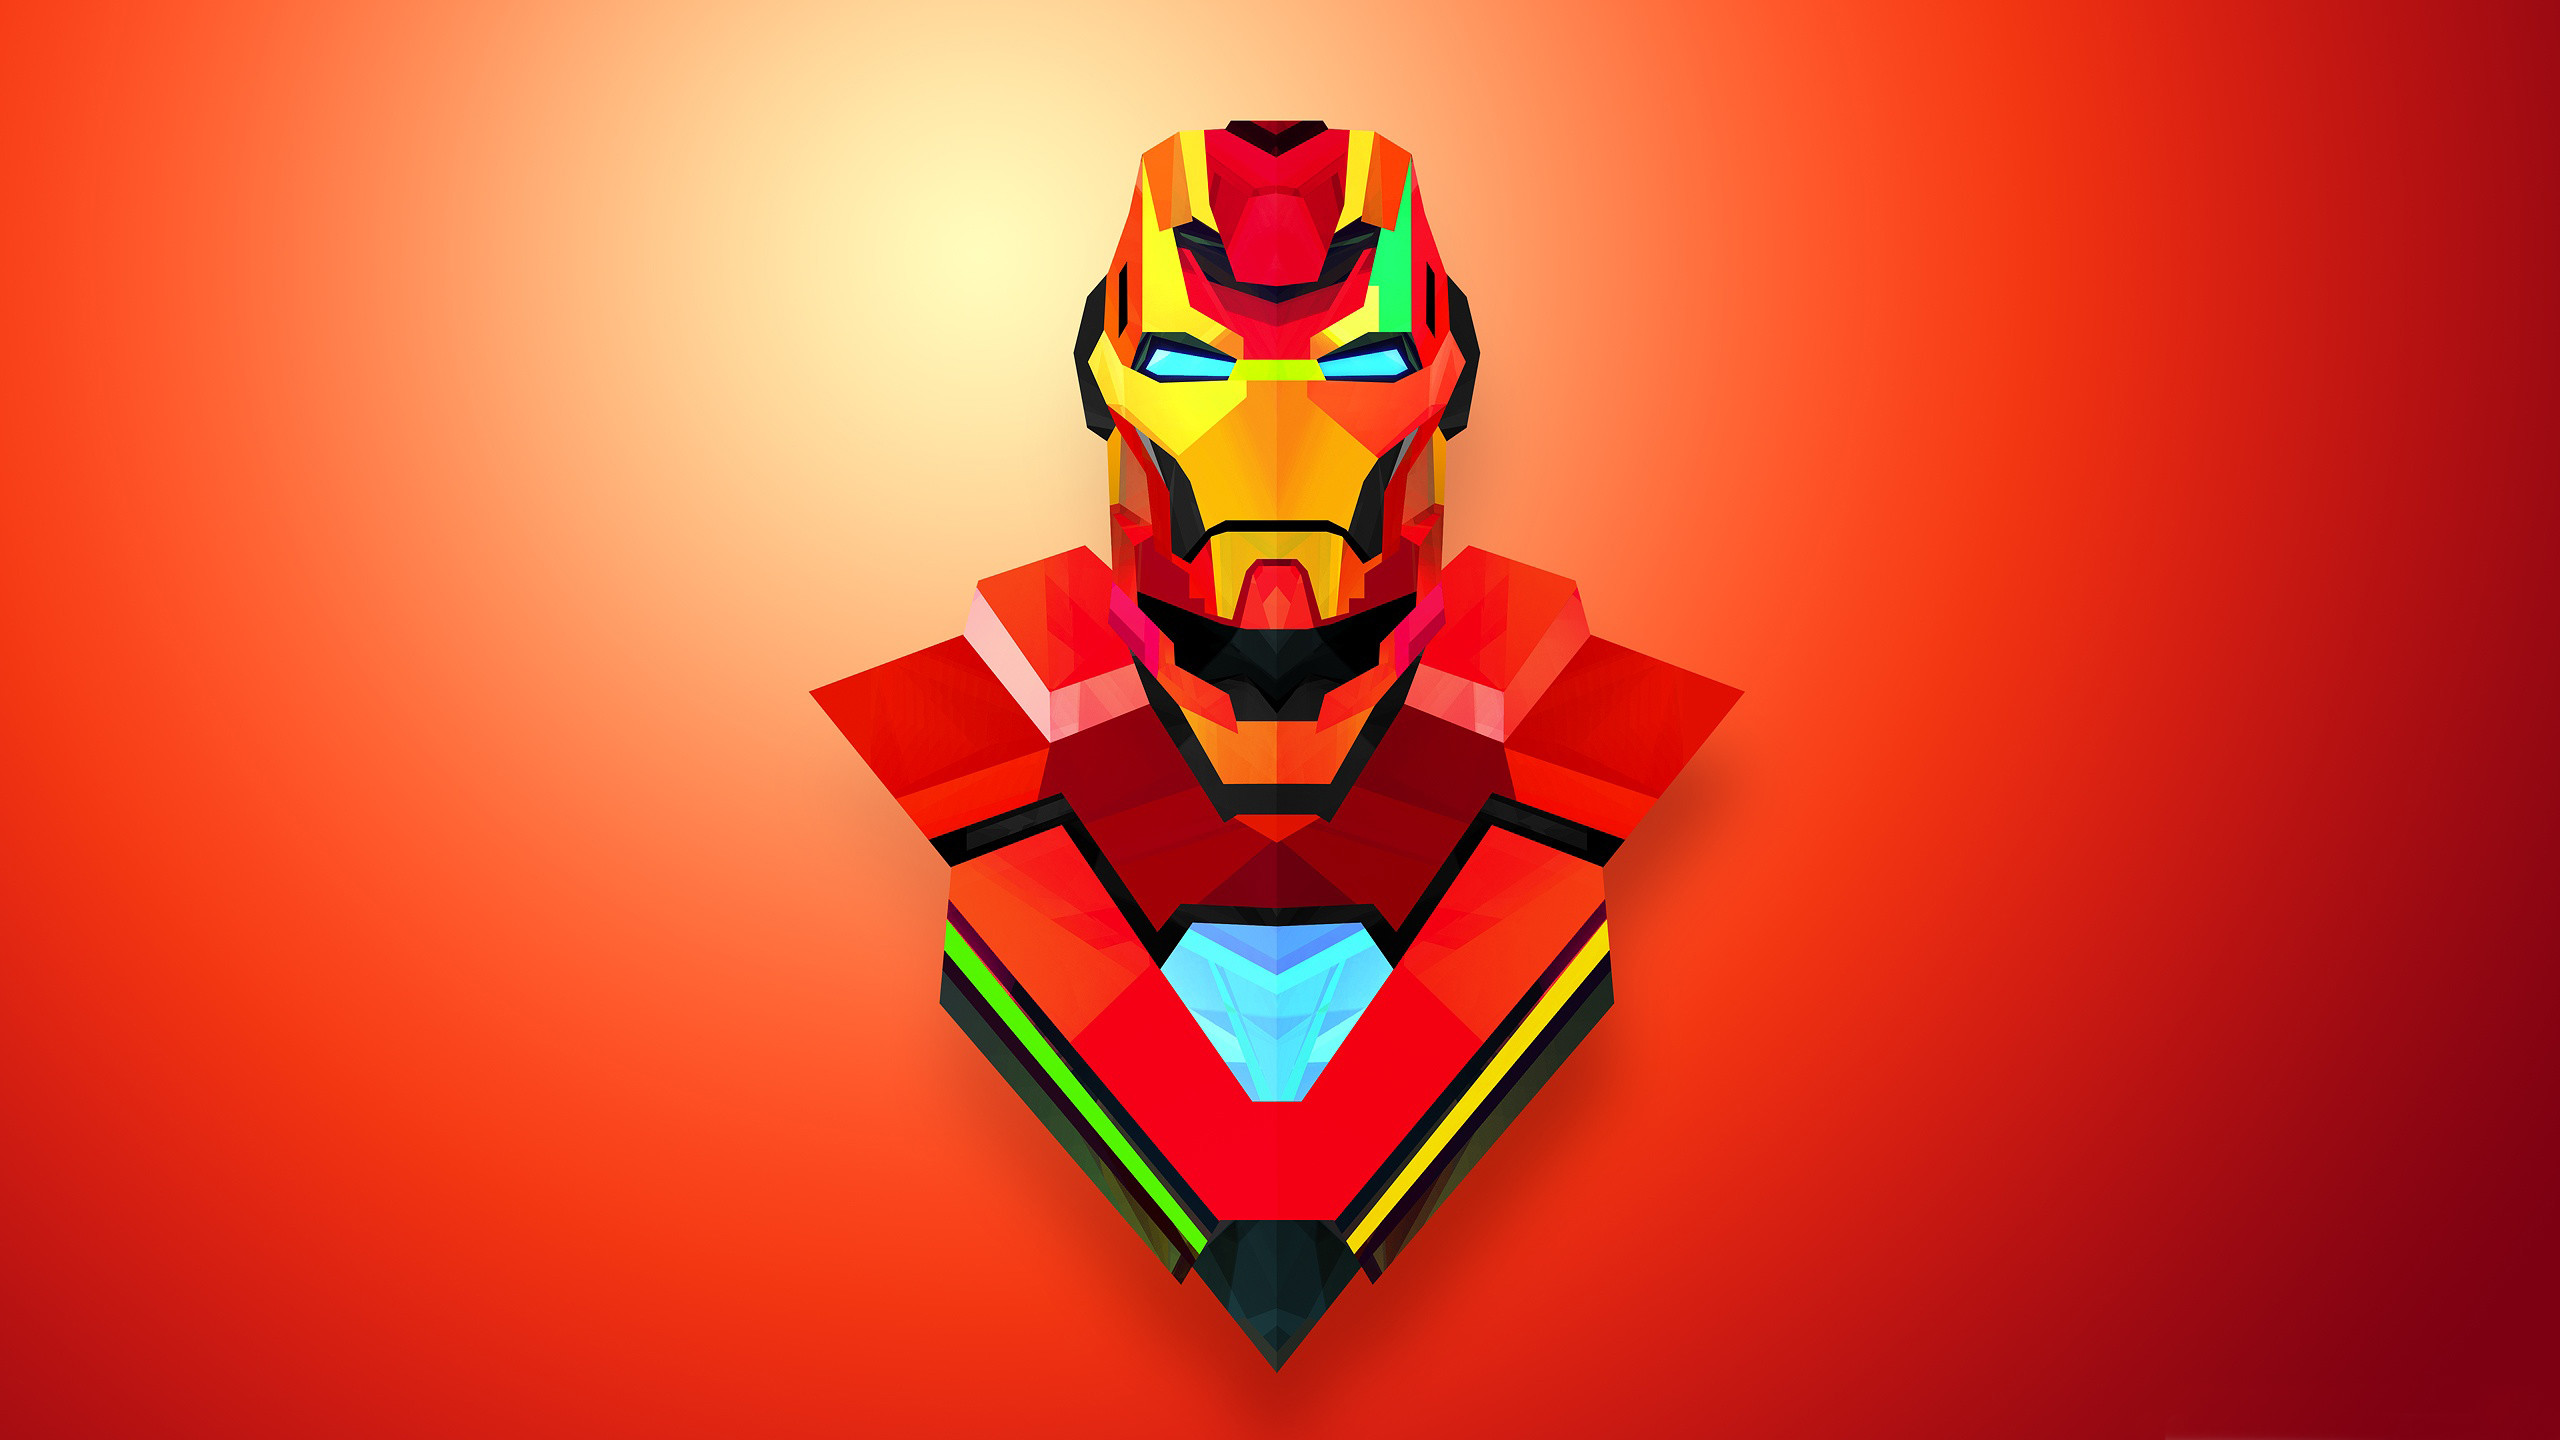 2560x1440 Attachment for Artistic Iron Man Wallpaper in Abstract Art ...